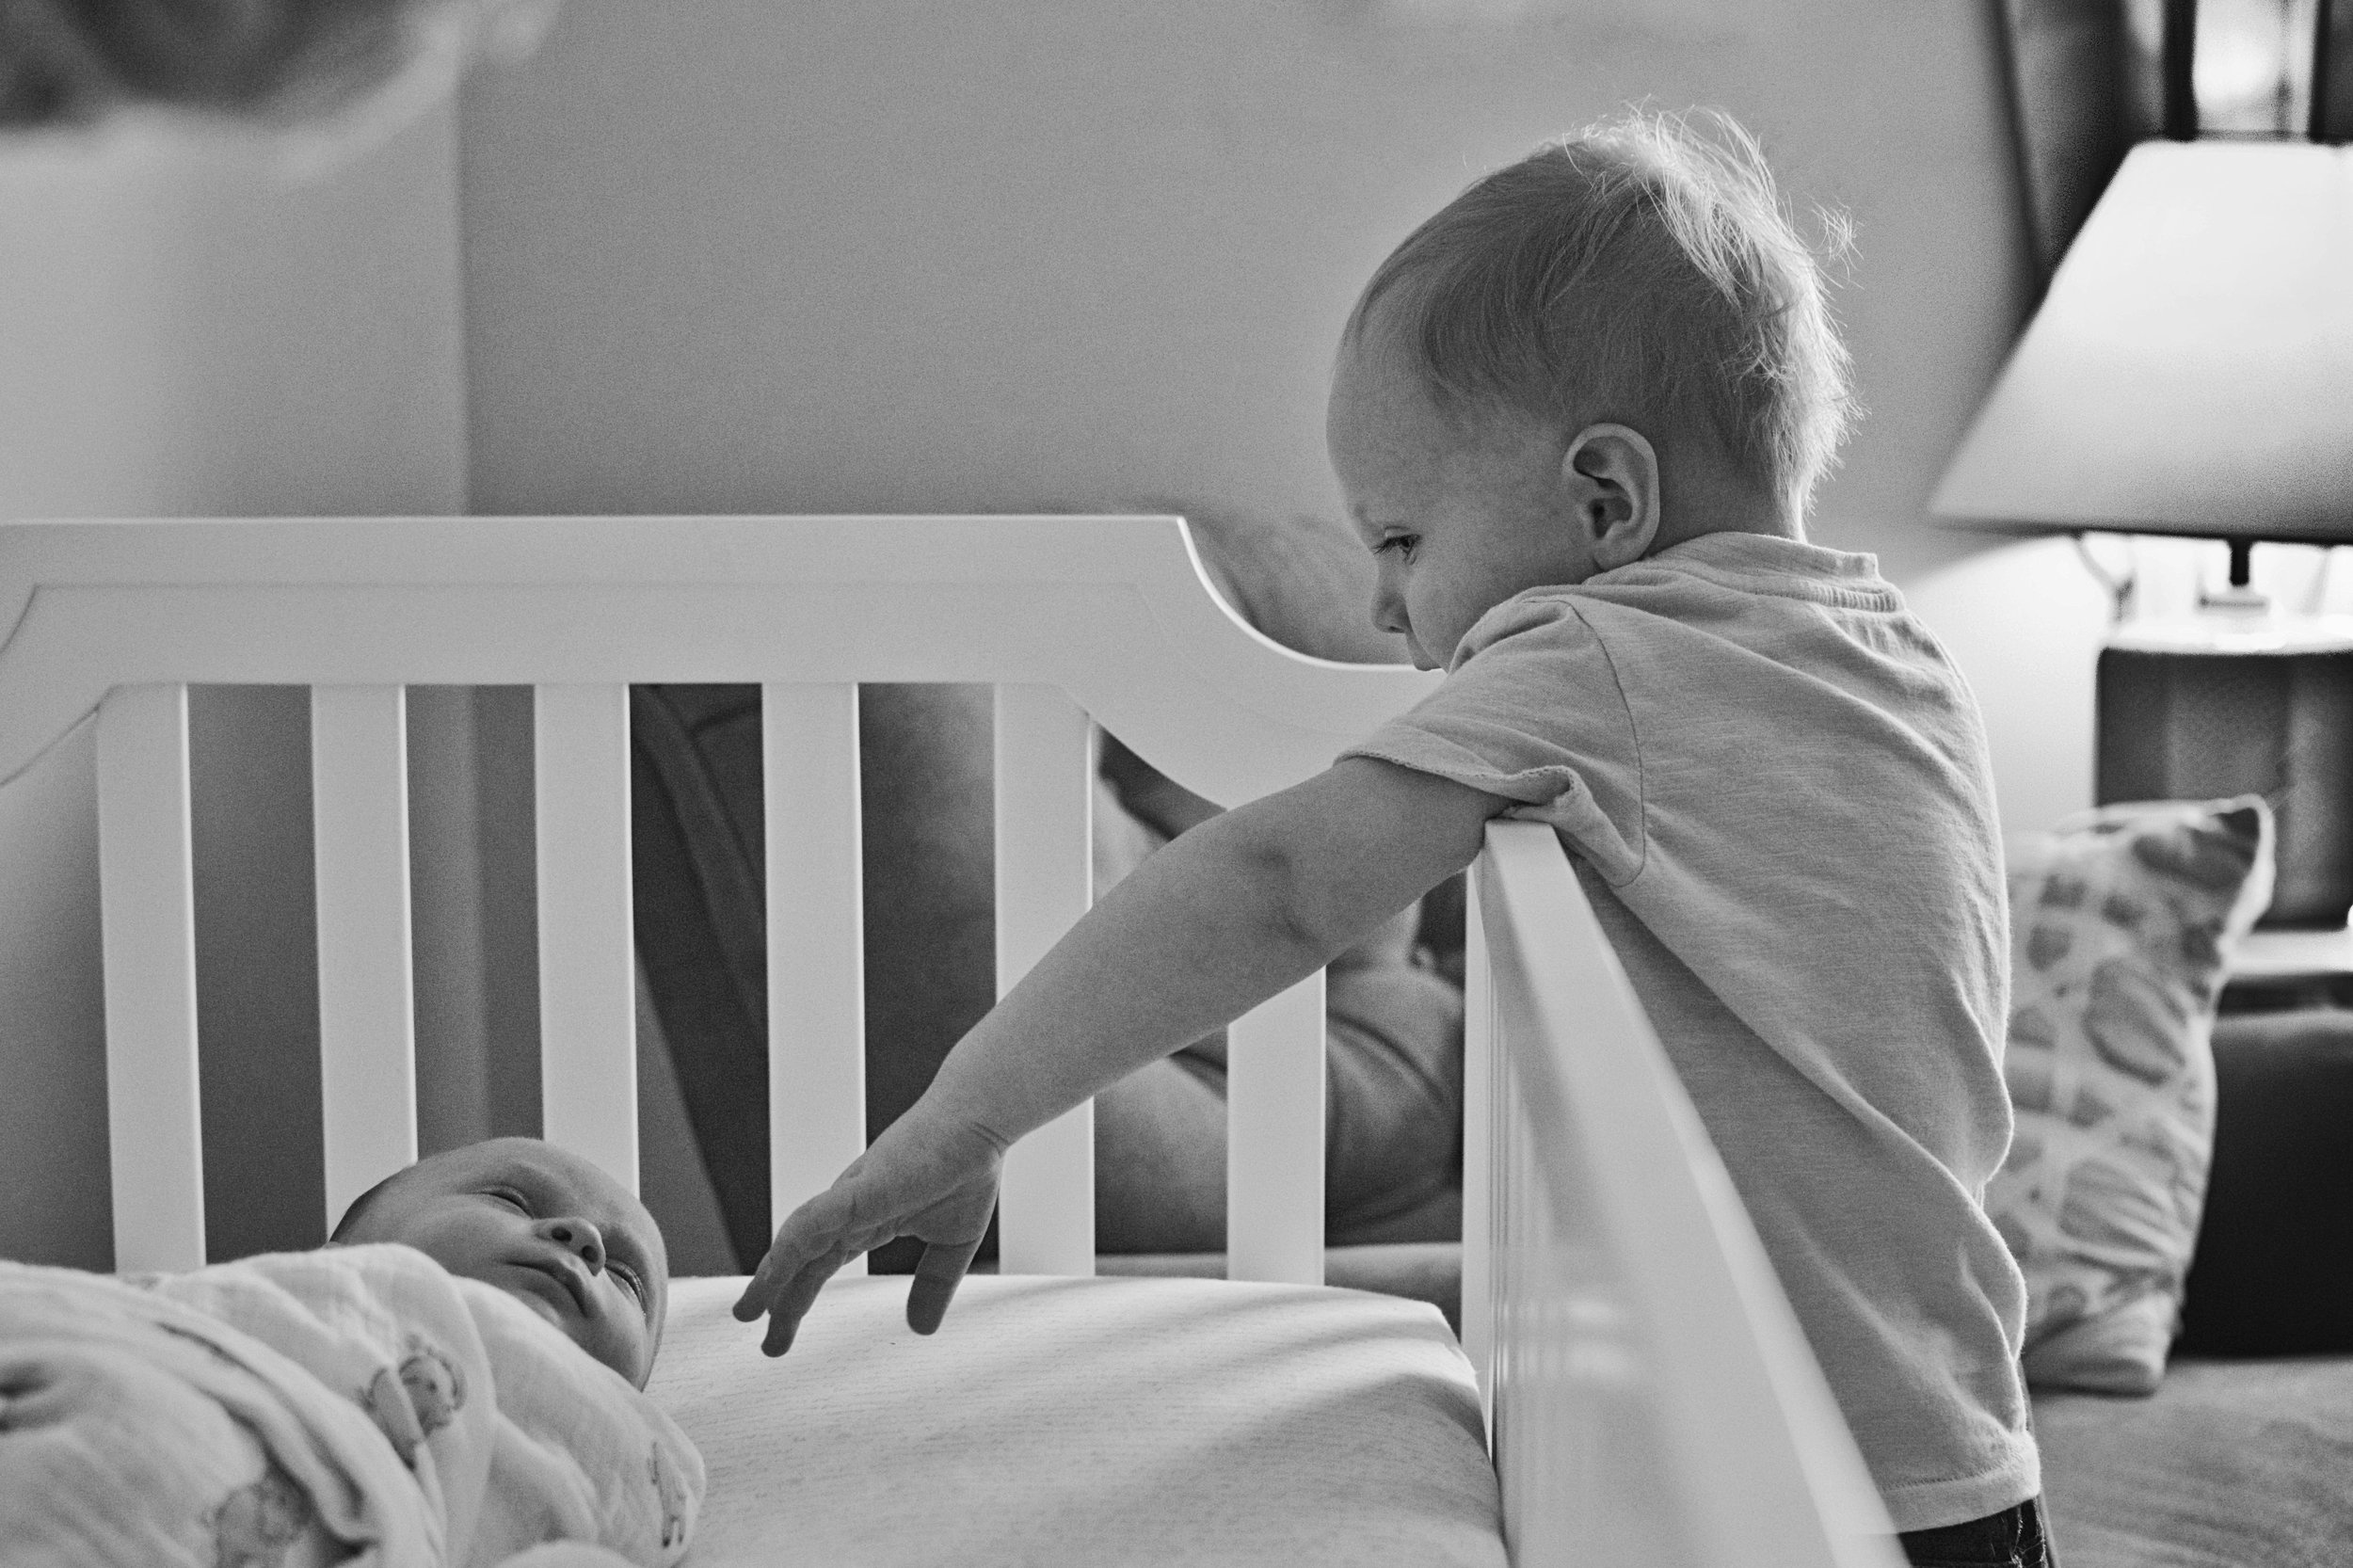 At a Glenn Allen home, a big brother reaches into his baby sister's crib to say hello during an in home lifestyle new life session.